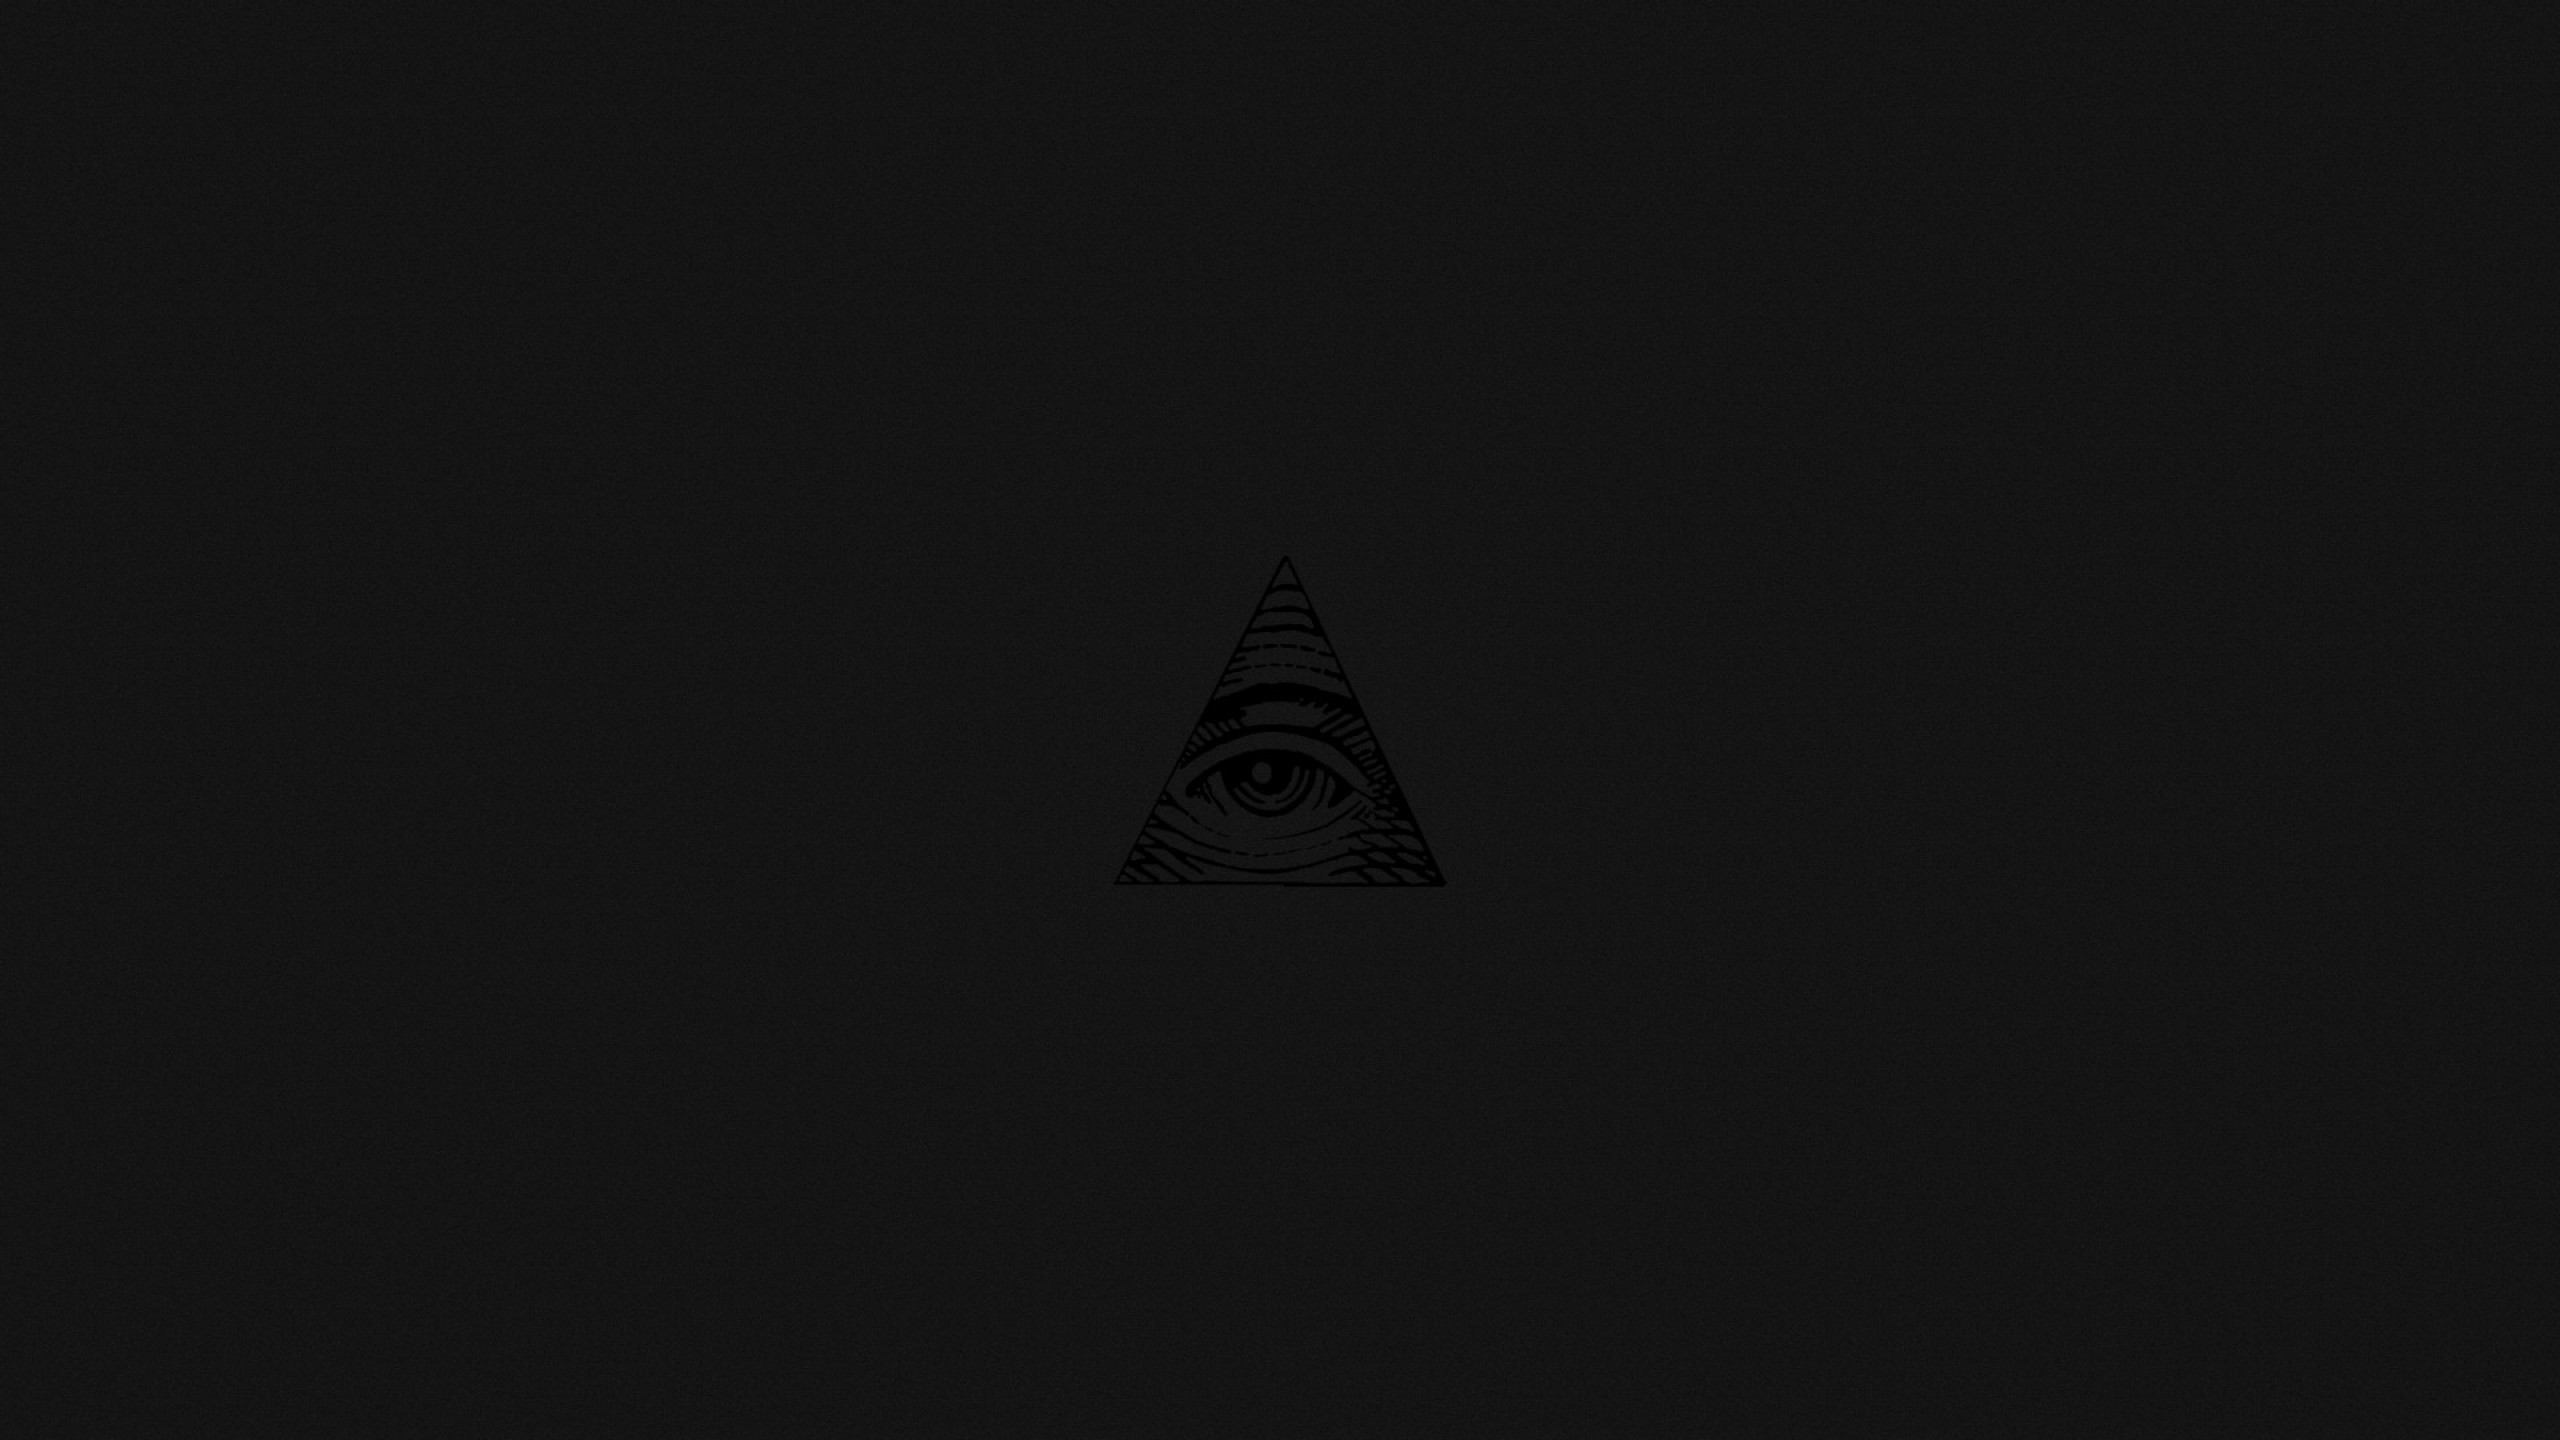 2560x1440 Fine Images Collection: Illuminati Desktop Wallpapers